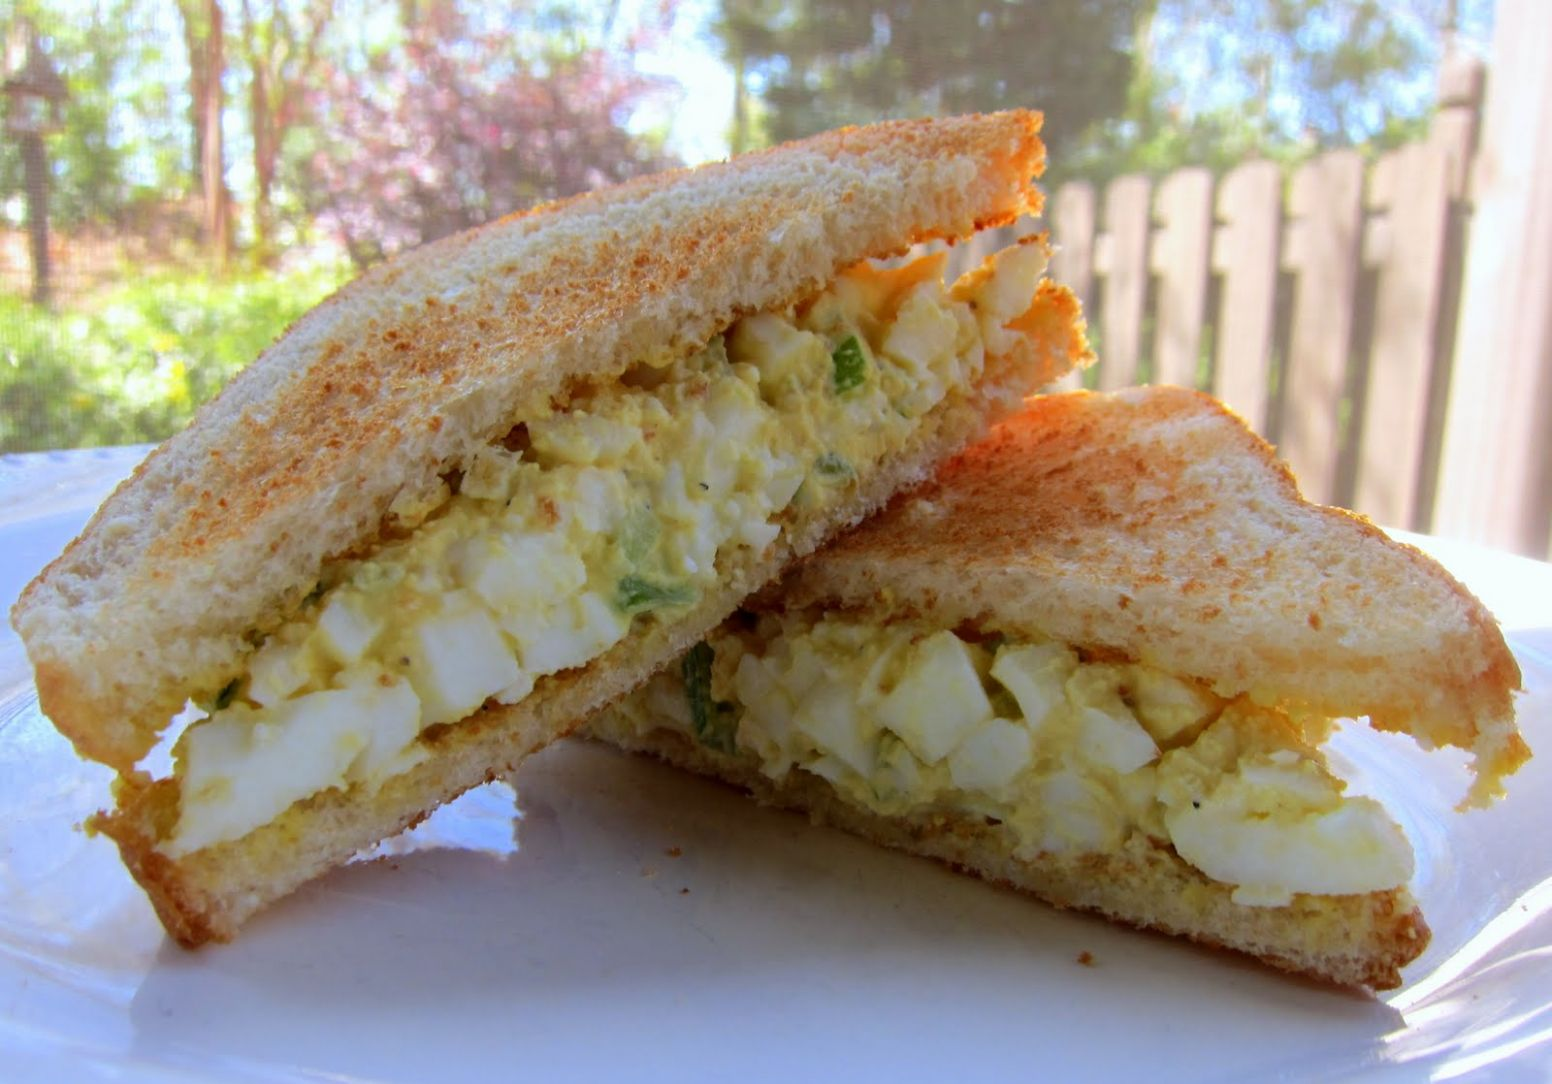 Egg Salad Recipe | Panlasang Pinoy Recipes™ - Sandwich Recipes Pinoy